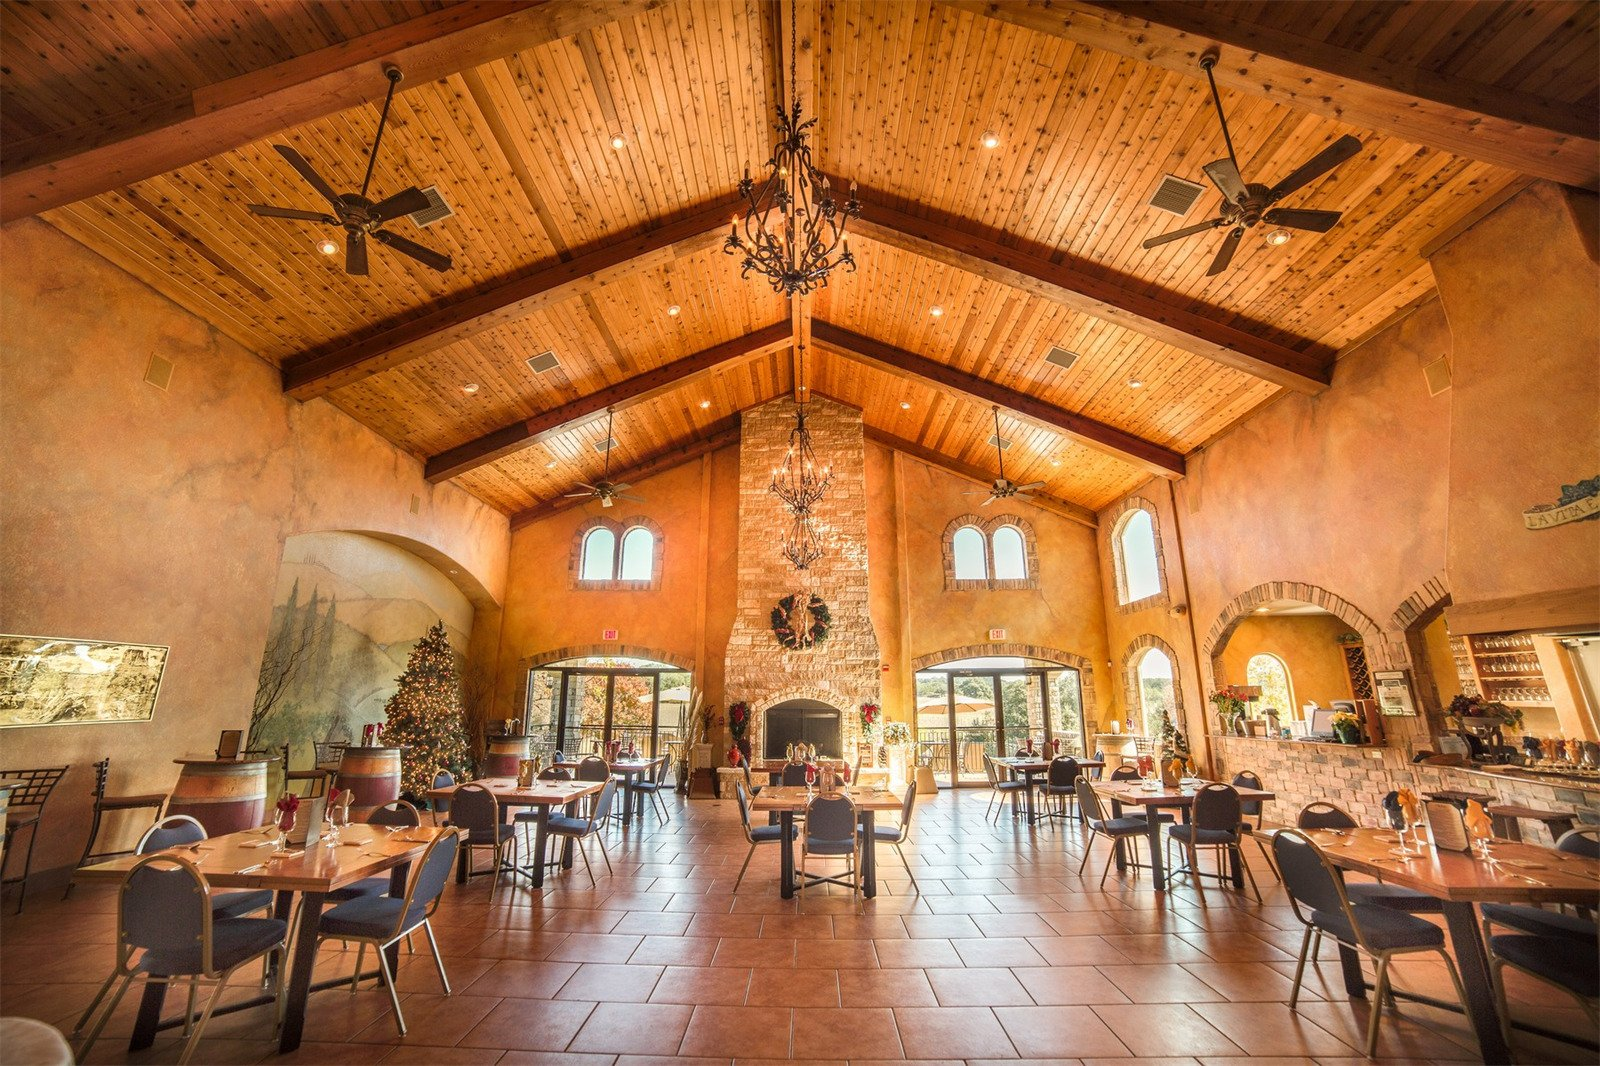 Texas Hill Country Winery Restaurant